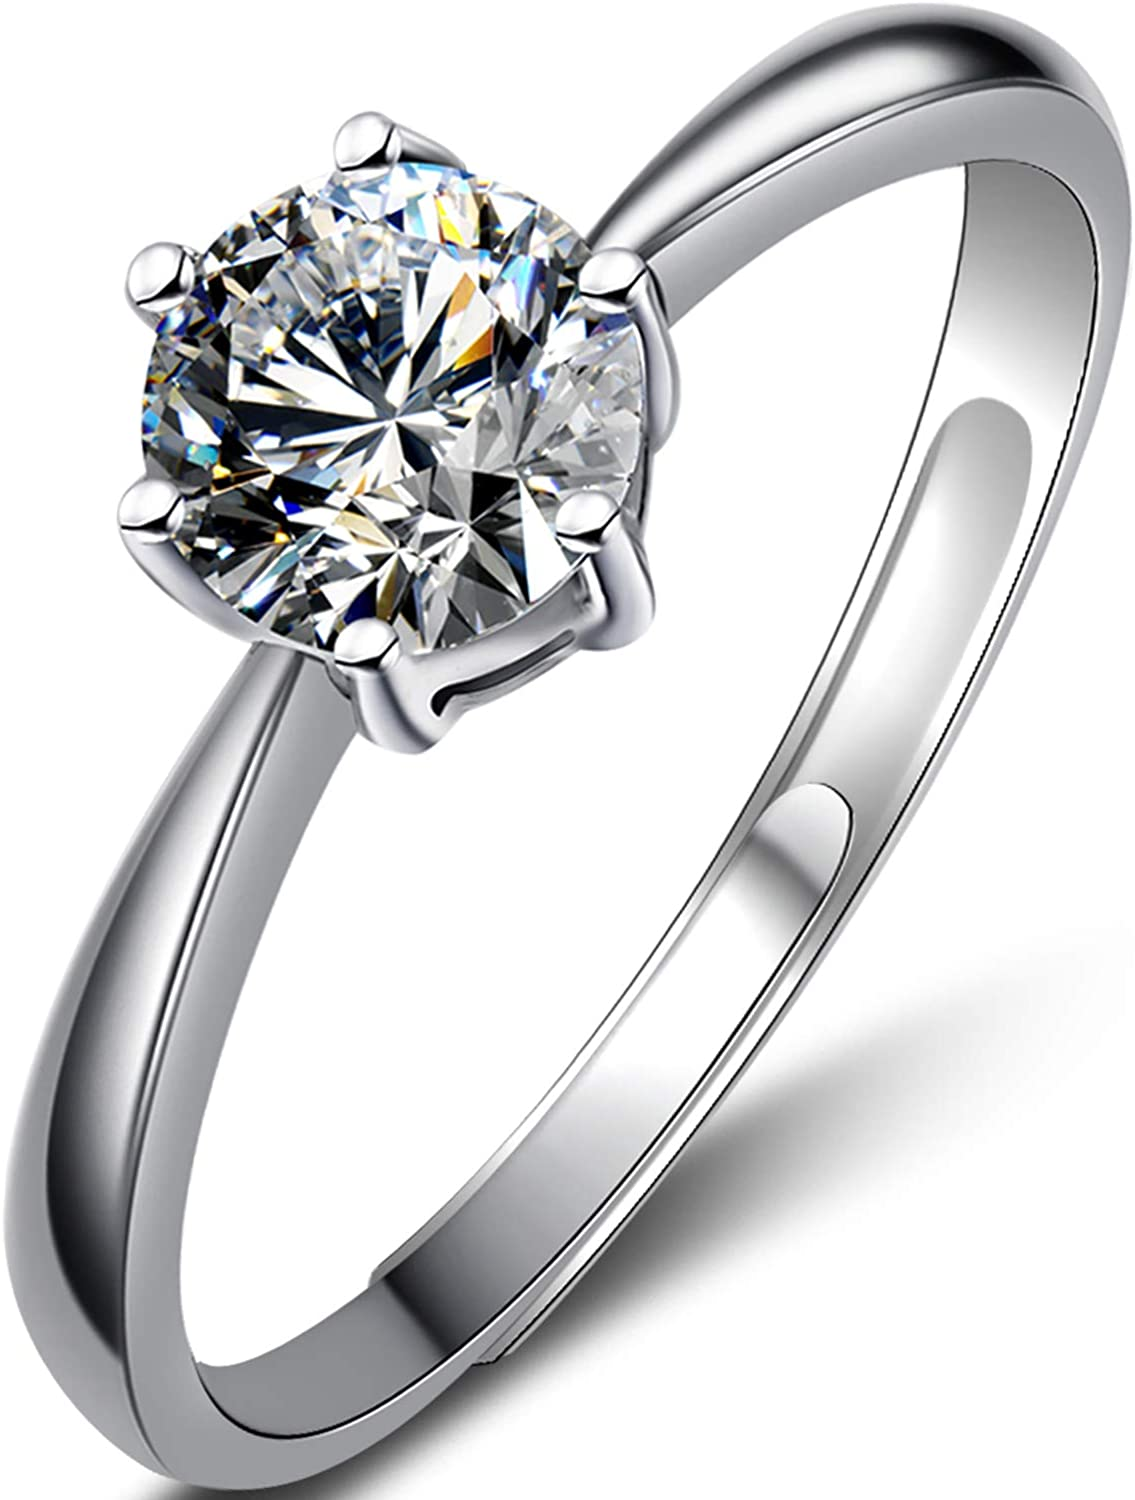 Classic one-Carat six-Claw Diamond Imitation Ring,S925 Sterling Silver Rings for Women,Do not Fade, Valentine's Day or Birthday Presents